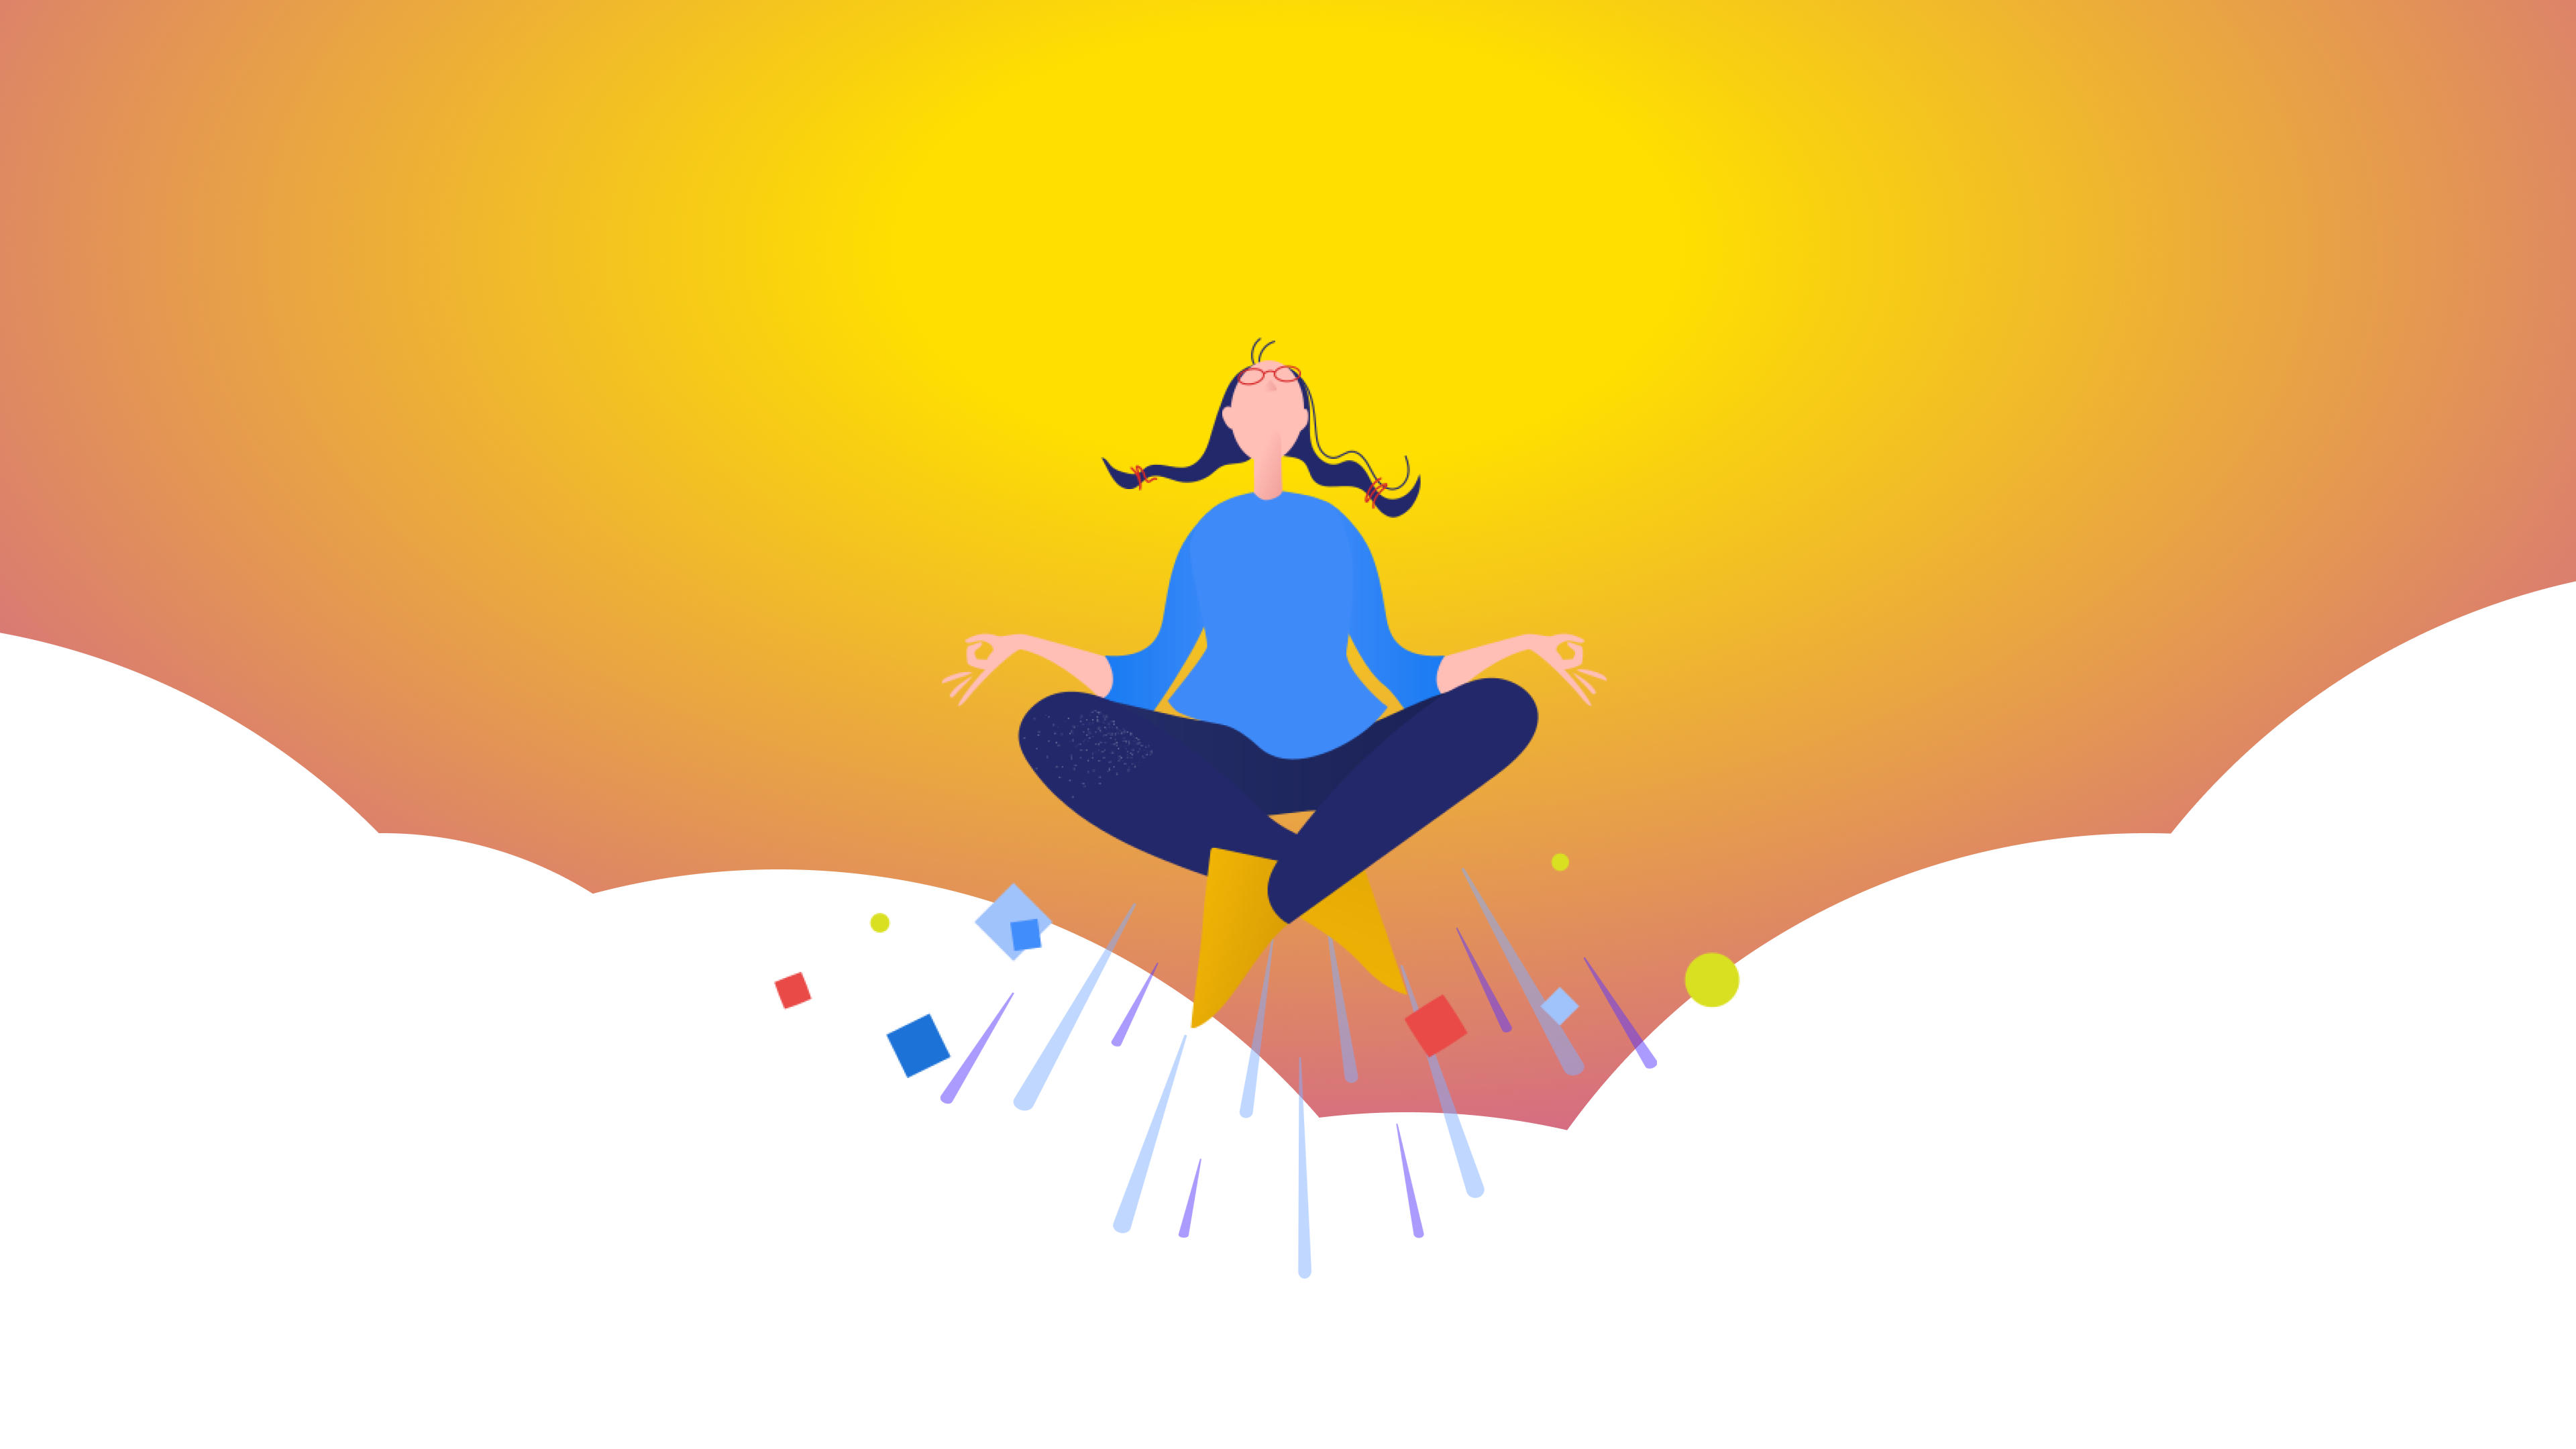 A person meditating above the clouds